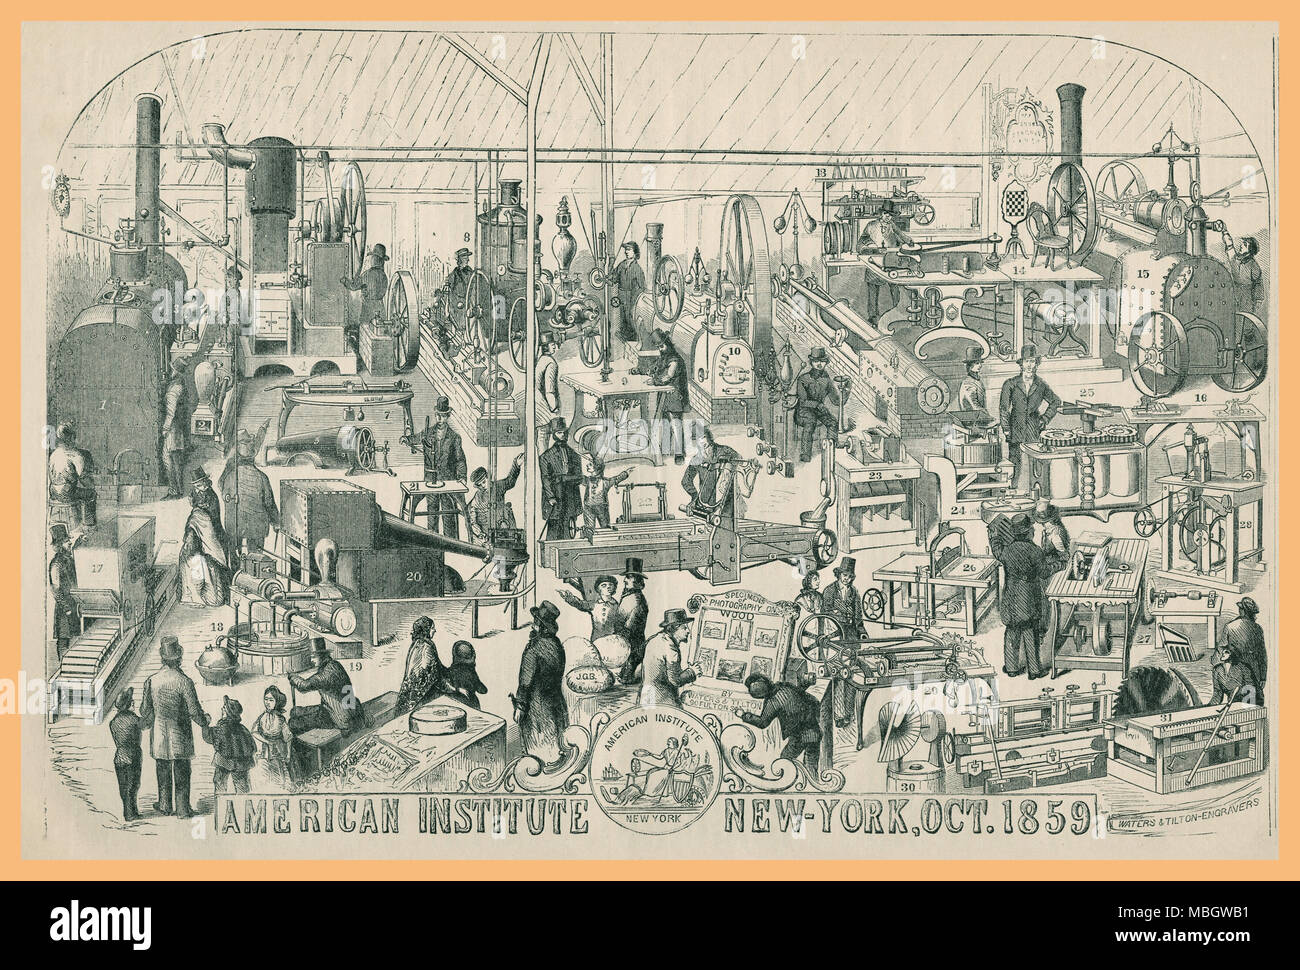 Mechanical Exhibition or Exposition 1859 Stock Photo